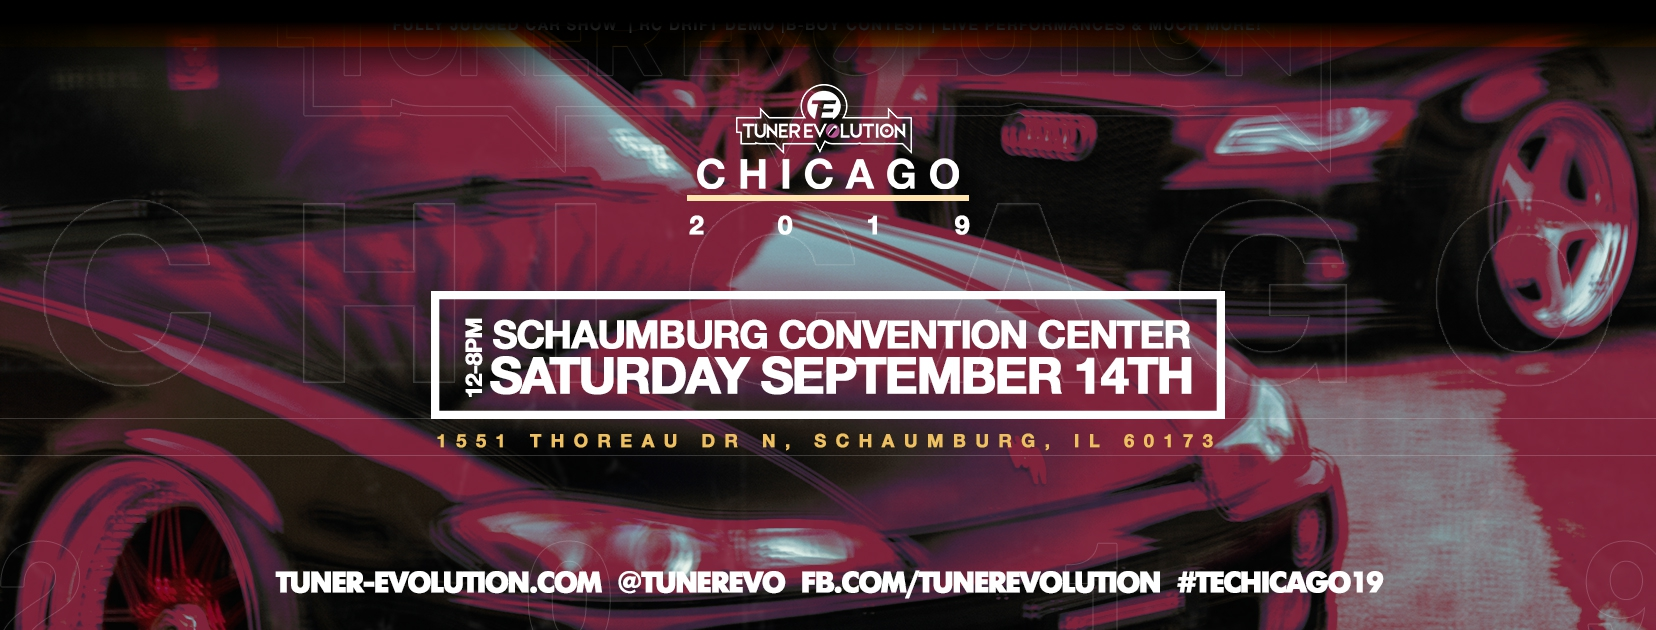 tuner evolution chicago